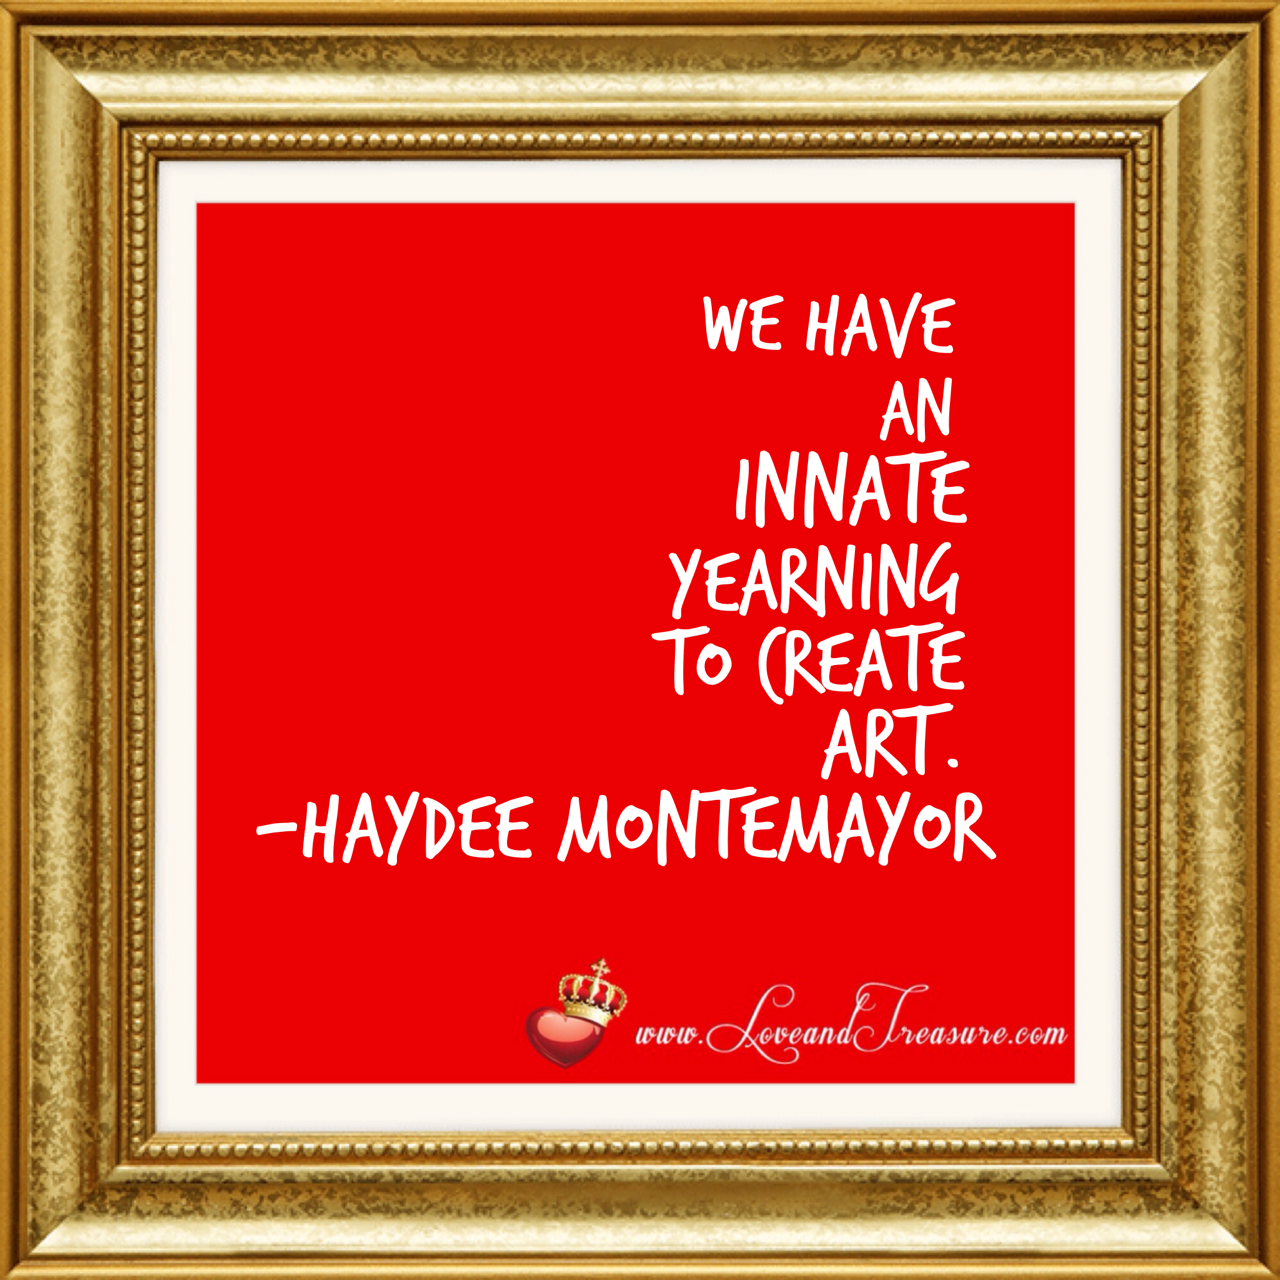 We all have an innate yearning to create art by Haydee Montemayor from Love and Treasure www.loveandtreasure.com